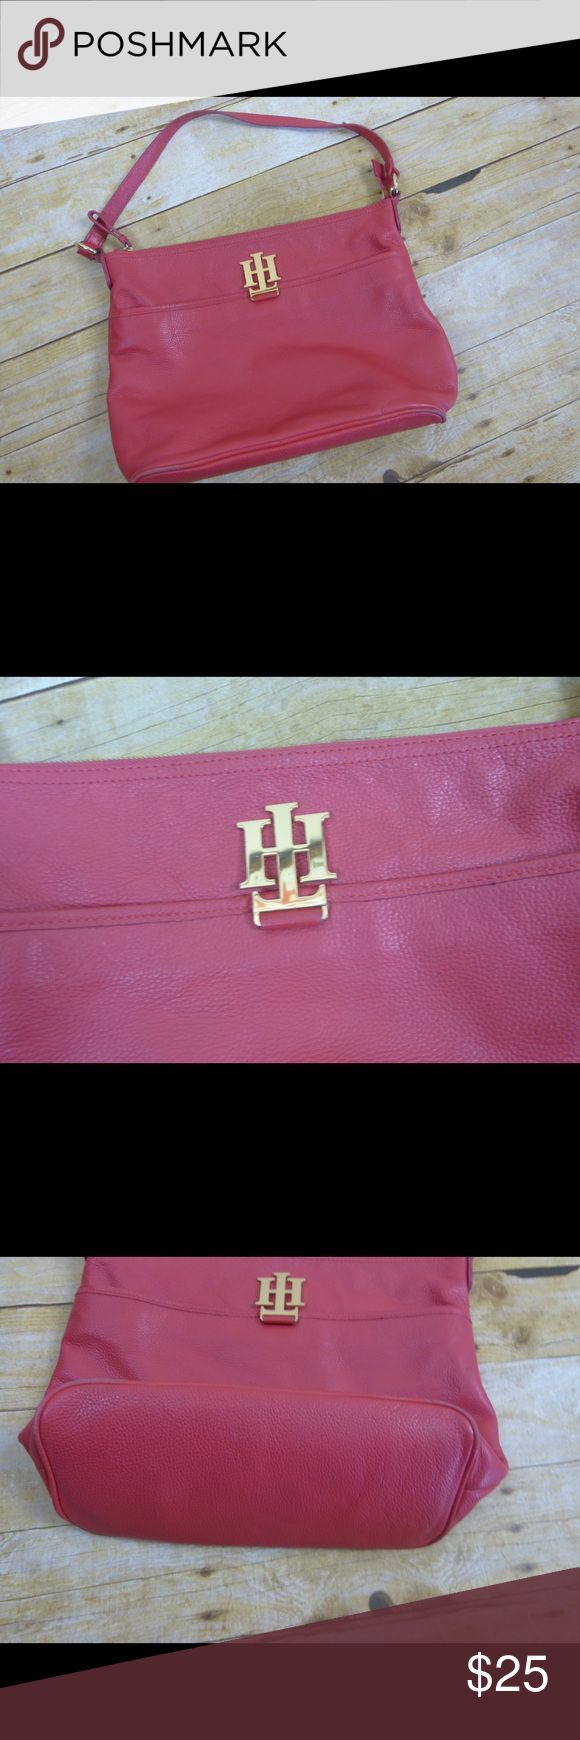 "Tommy Hilfiger Red Leather Purse Bag Tommy Hilfiger Red Leather Purse Bag  Genuine Leather  Gold hardware 11"" strap drop Bag measures 14.5"" x 5.5"" x 11"" Tommy Hilfiger Bags Shoulder Bags"